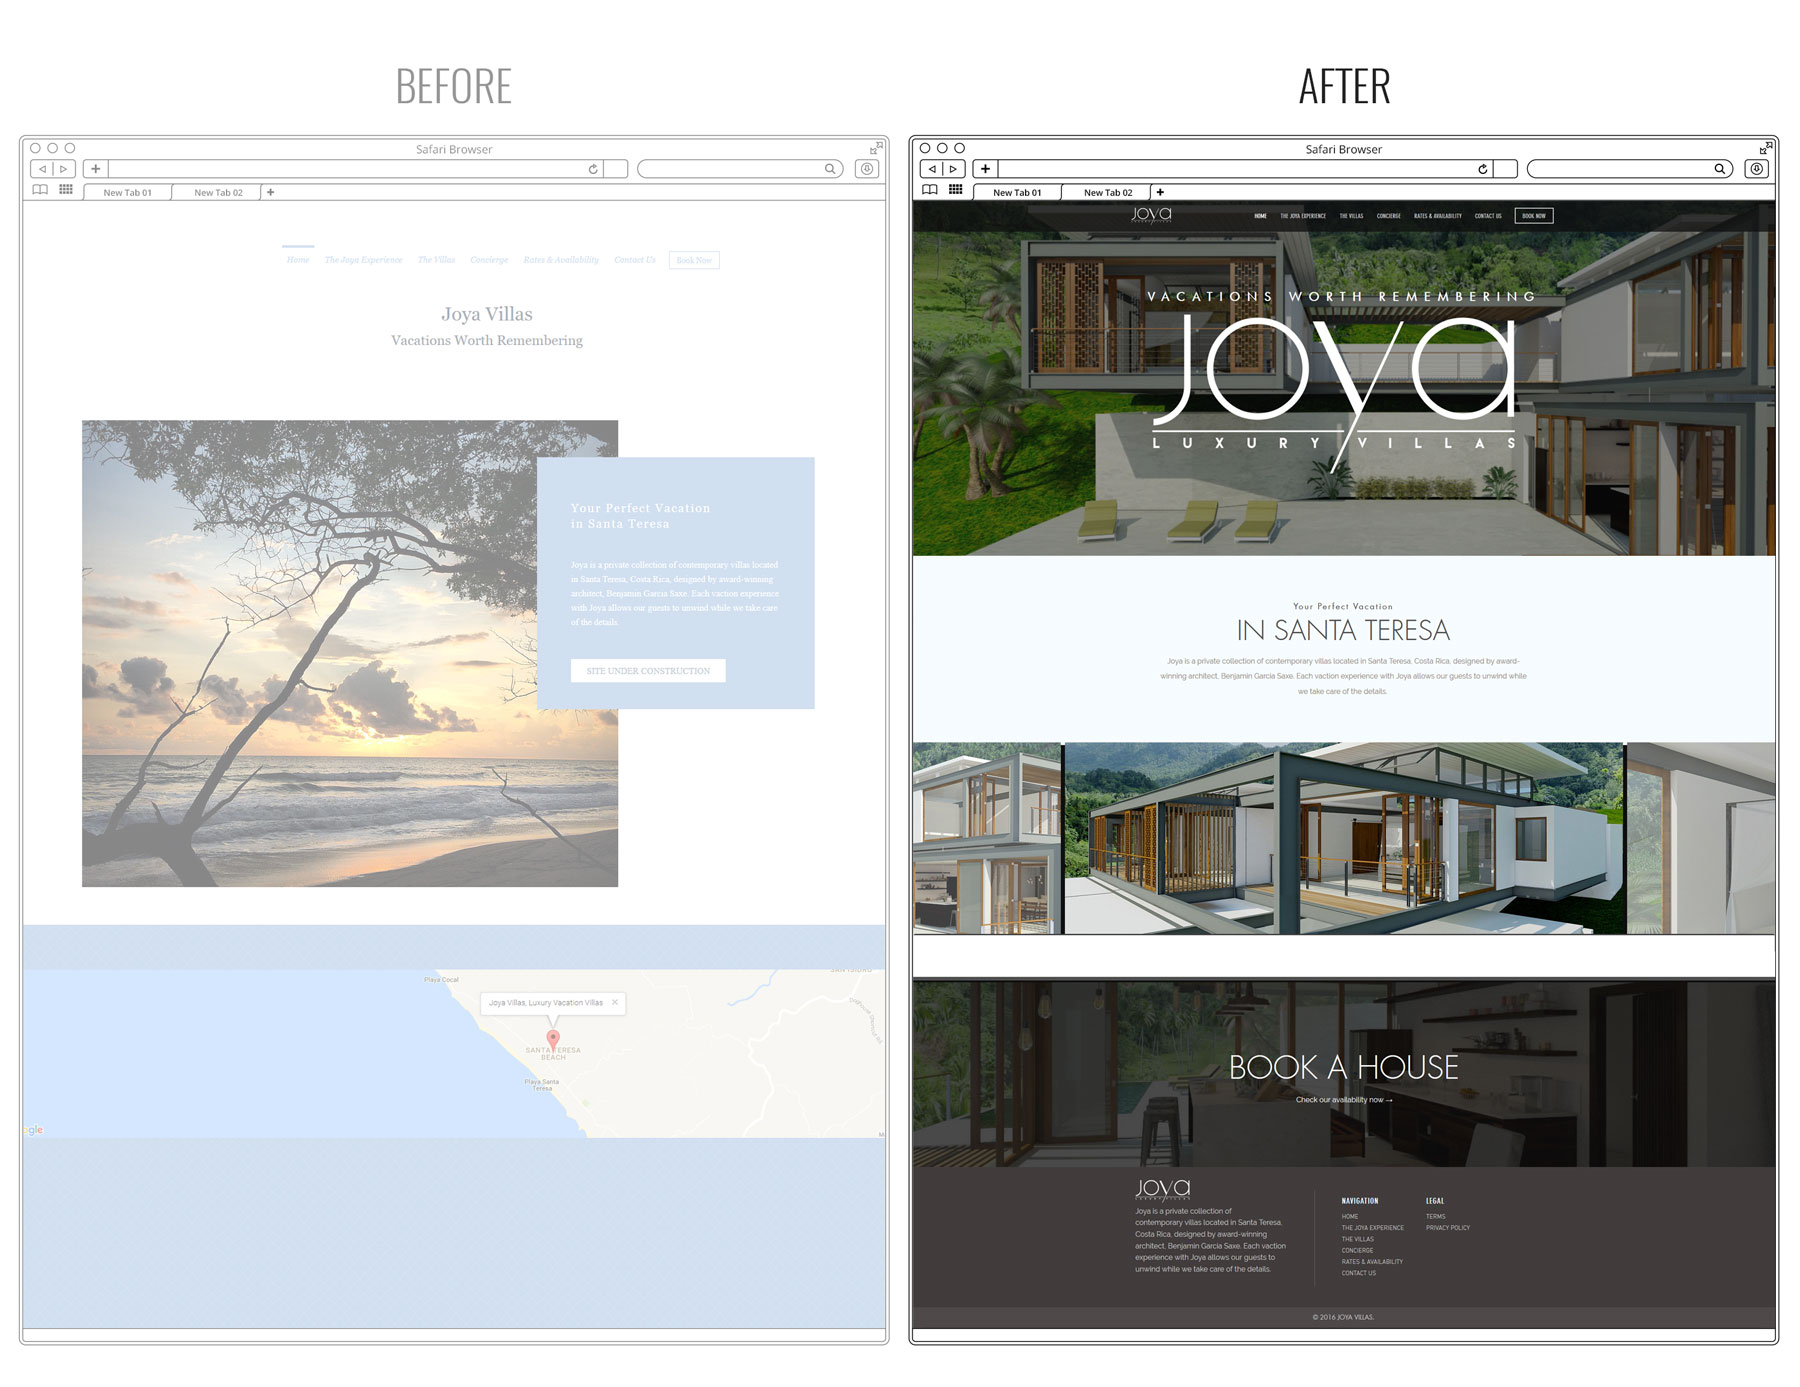 riverstone_creative_co_before_after_websites.jpg